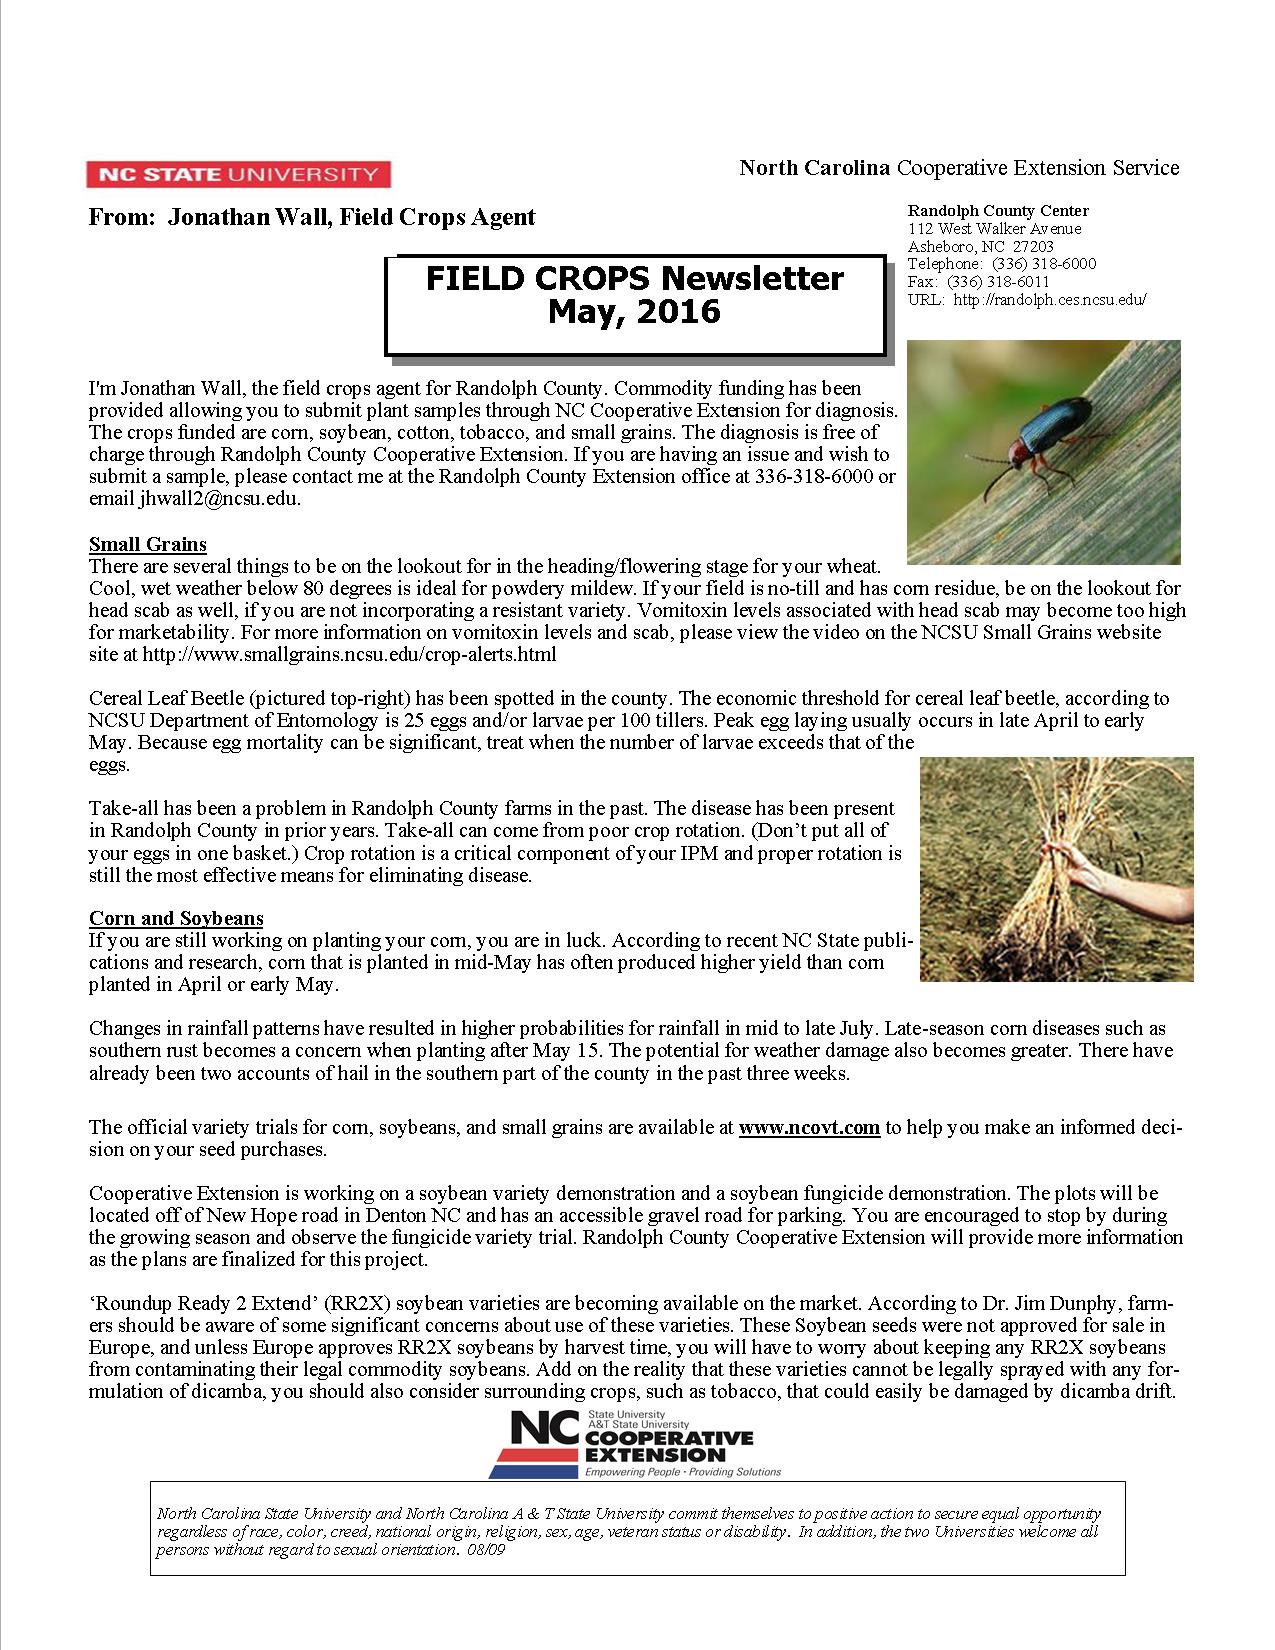 JPG page 1 Field Crops Newsletter May 24, 2016